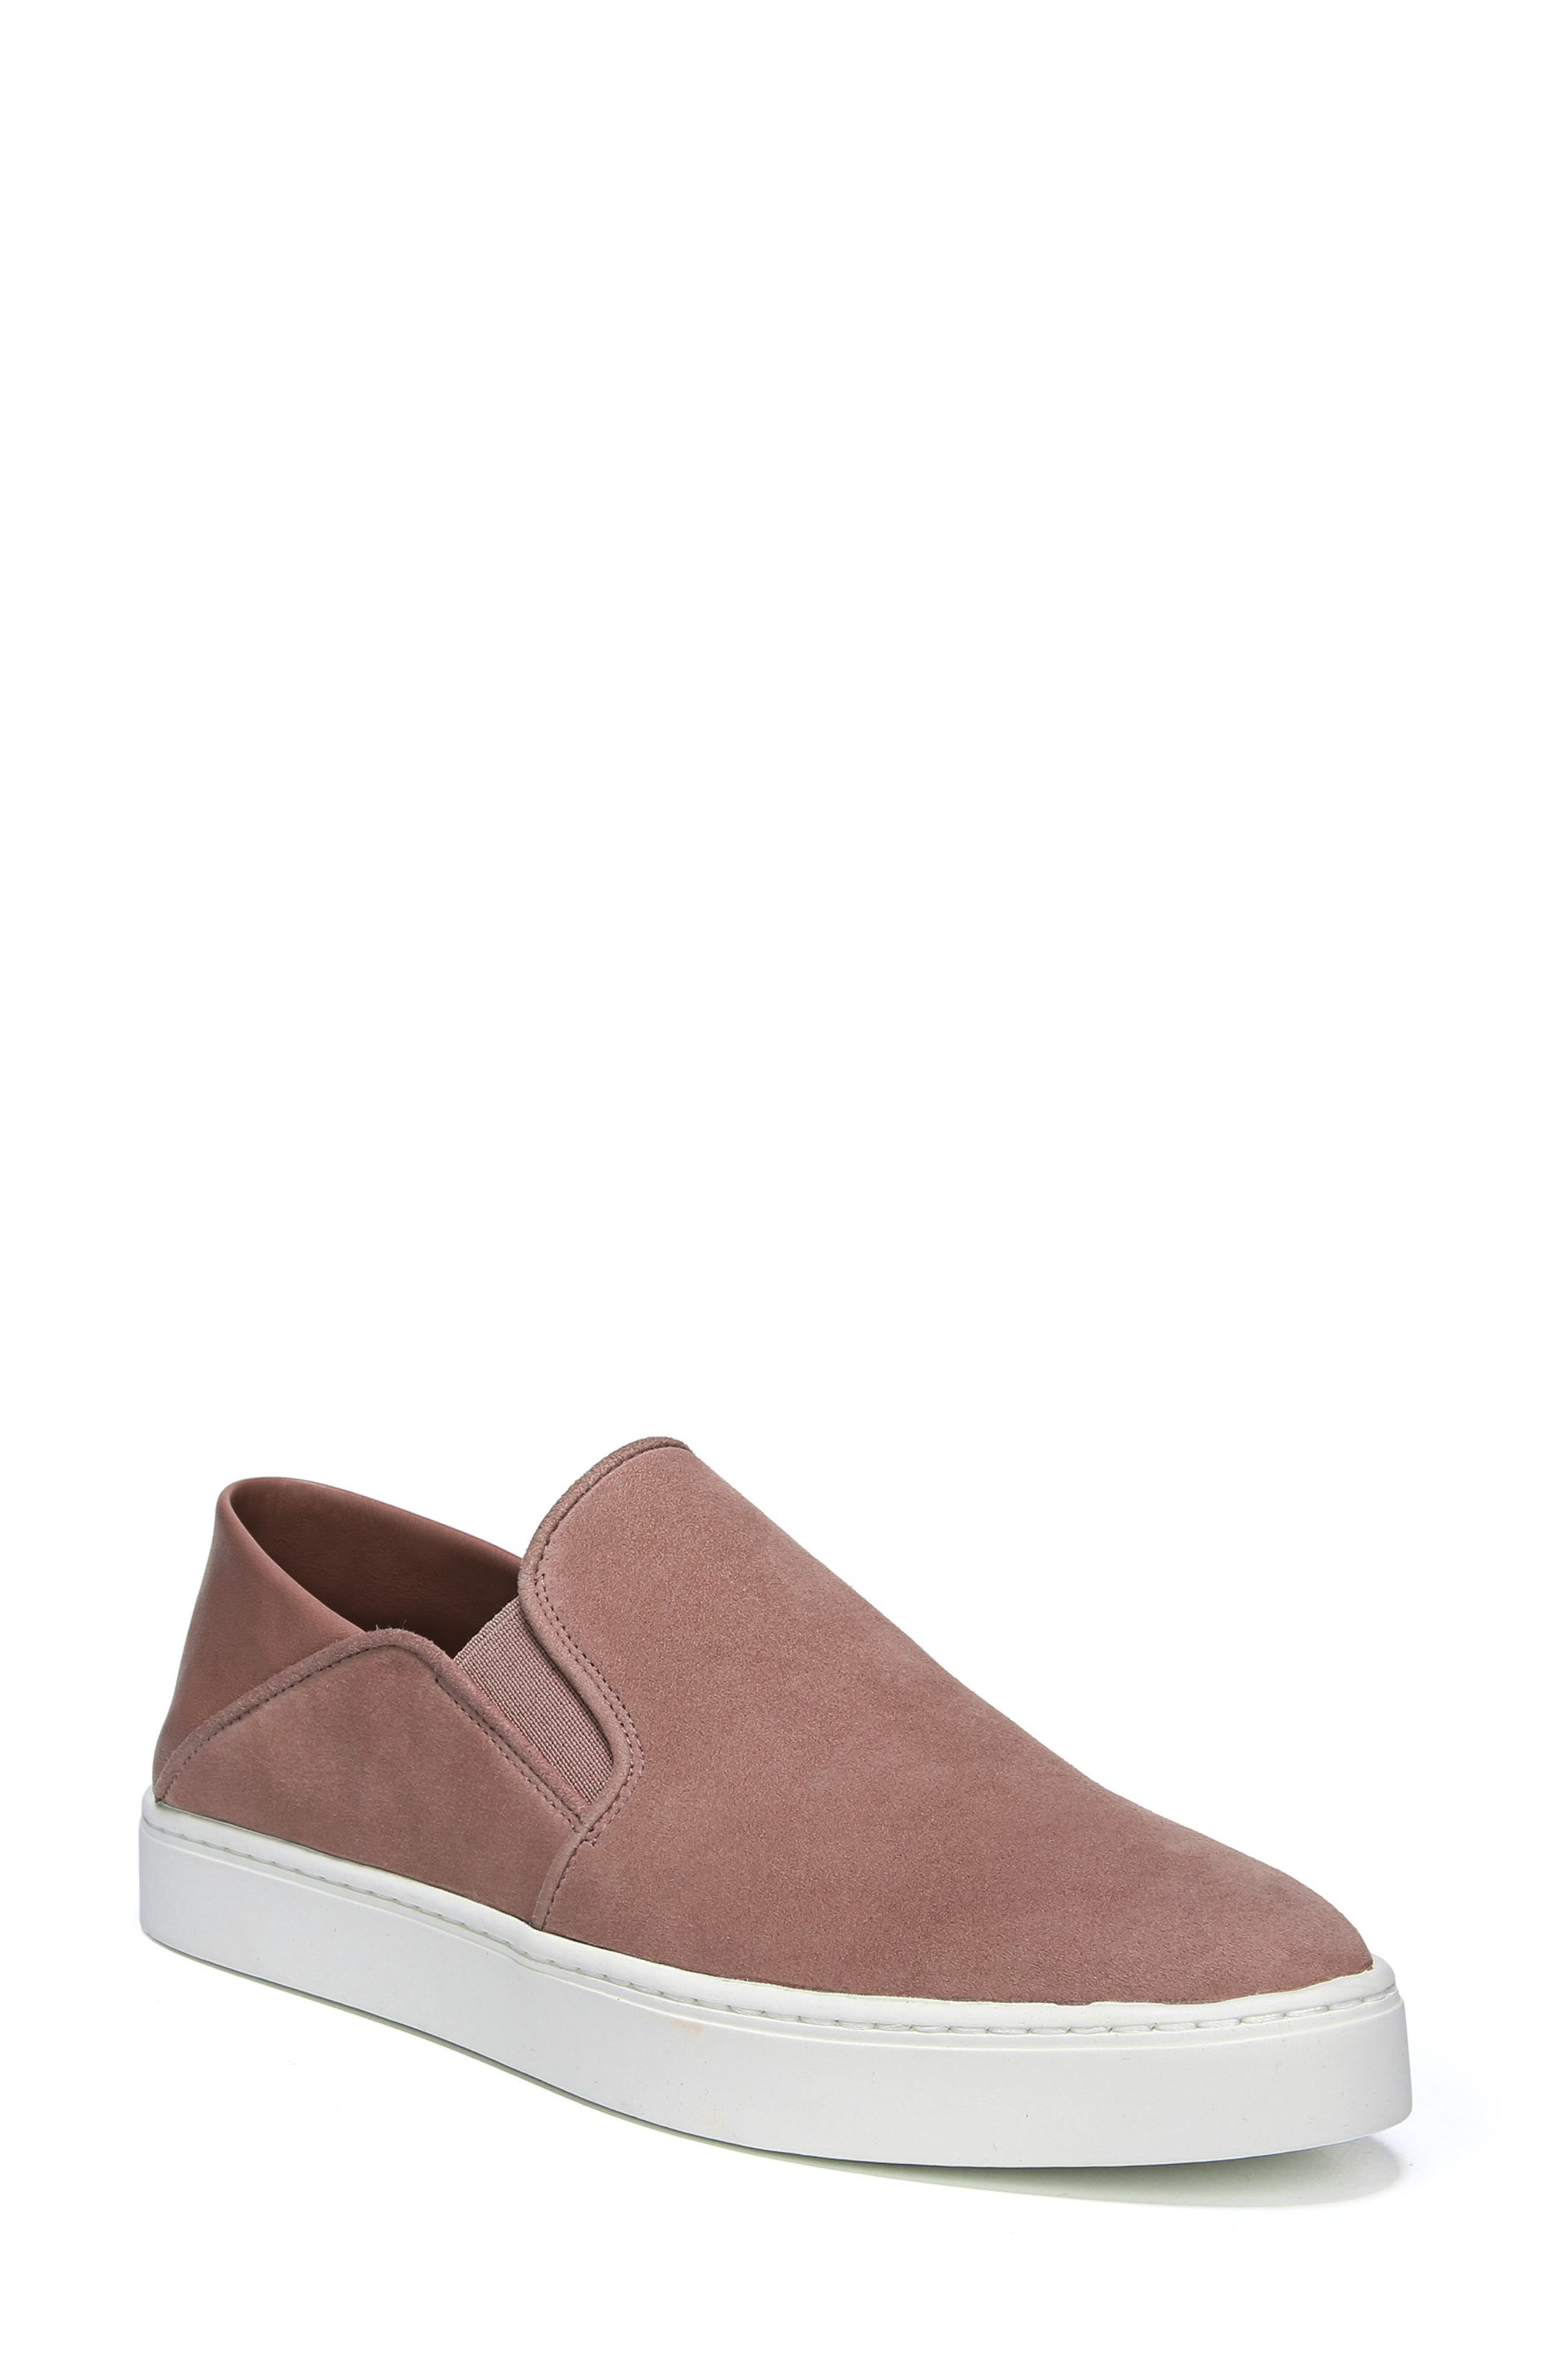 Women'S Garvey Round Toe Slip-On Suede & Leather Sneakers in Antique Rose